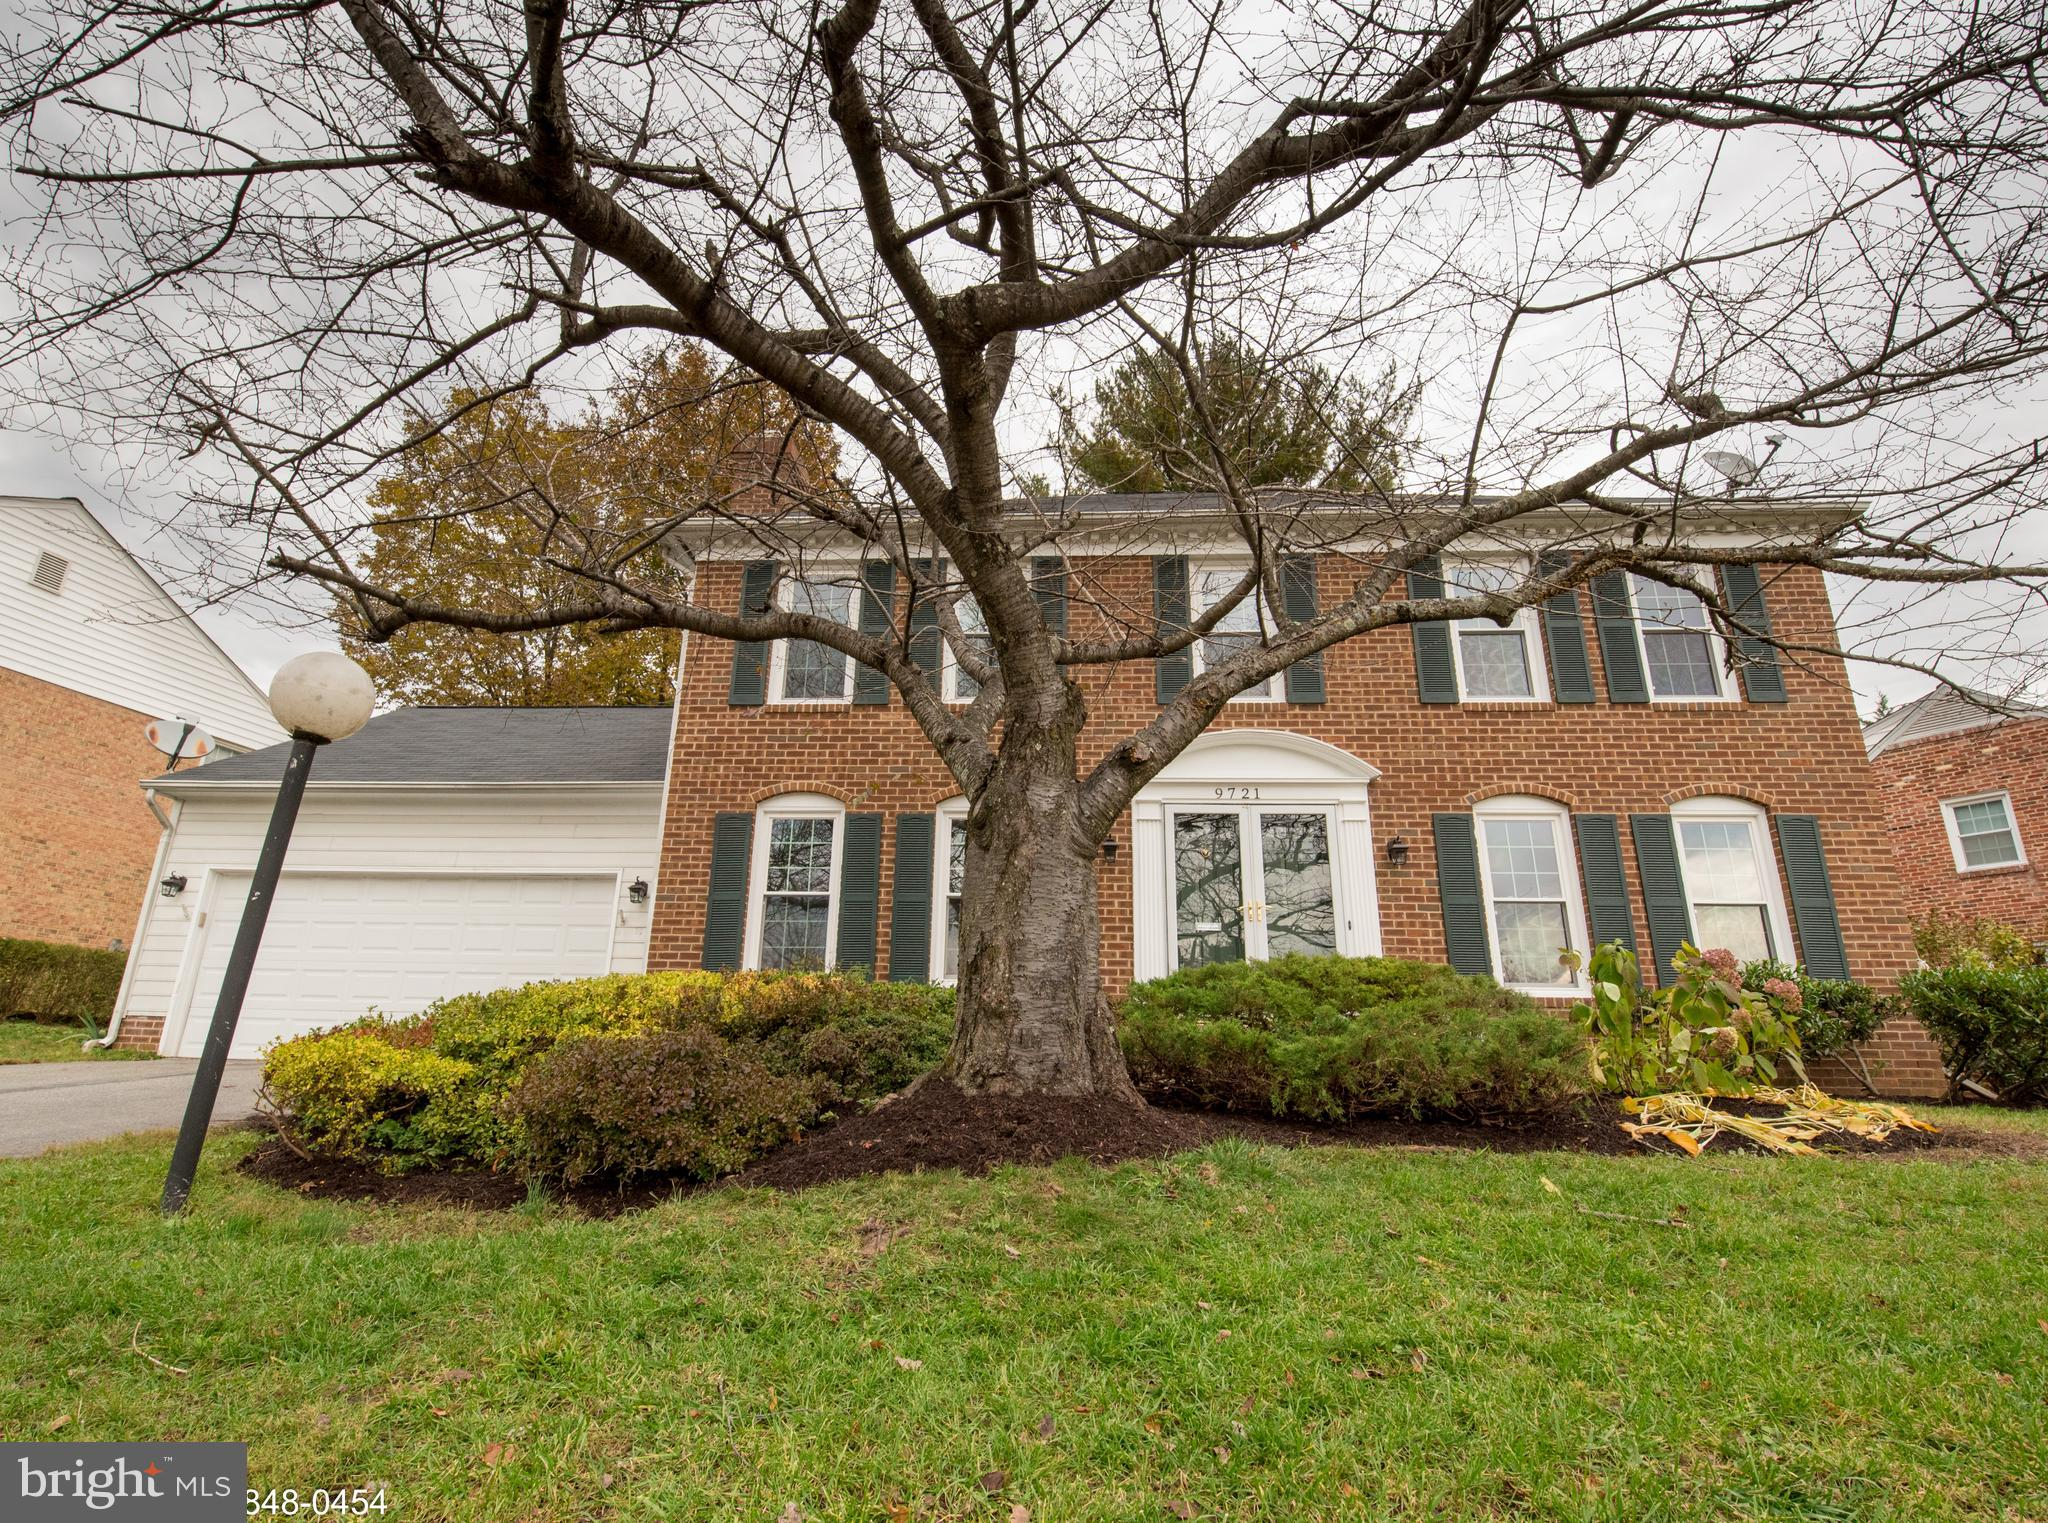 9721 LOOKOUT PLACE, GAITHERSBURG, MD 20886